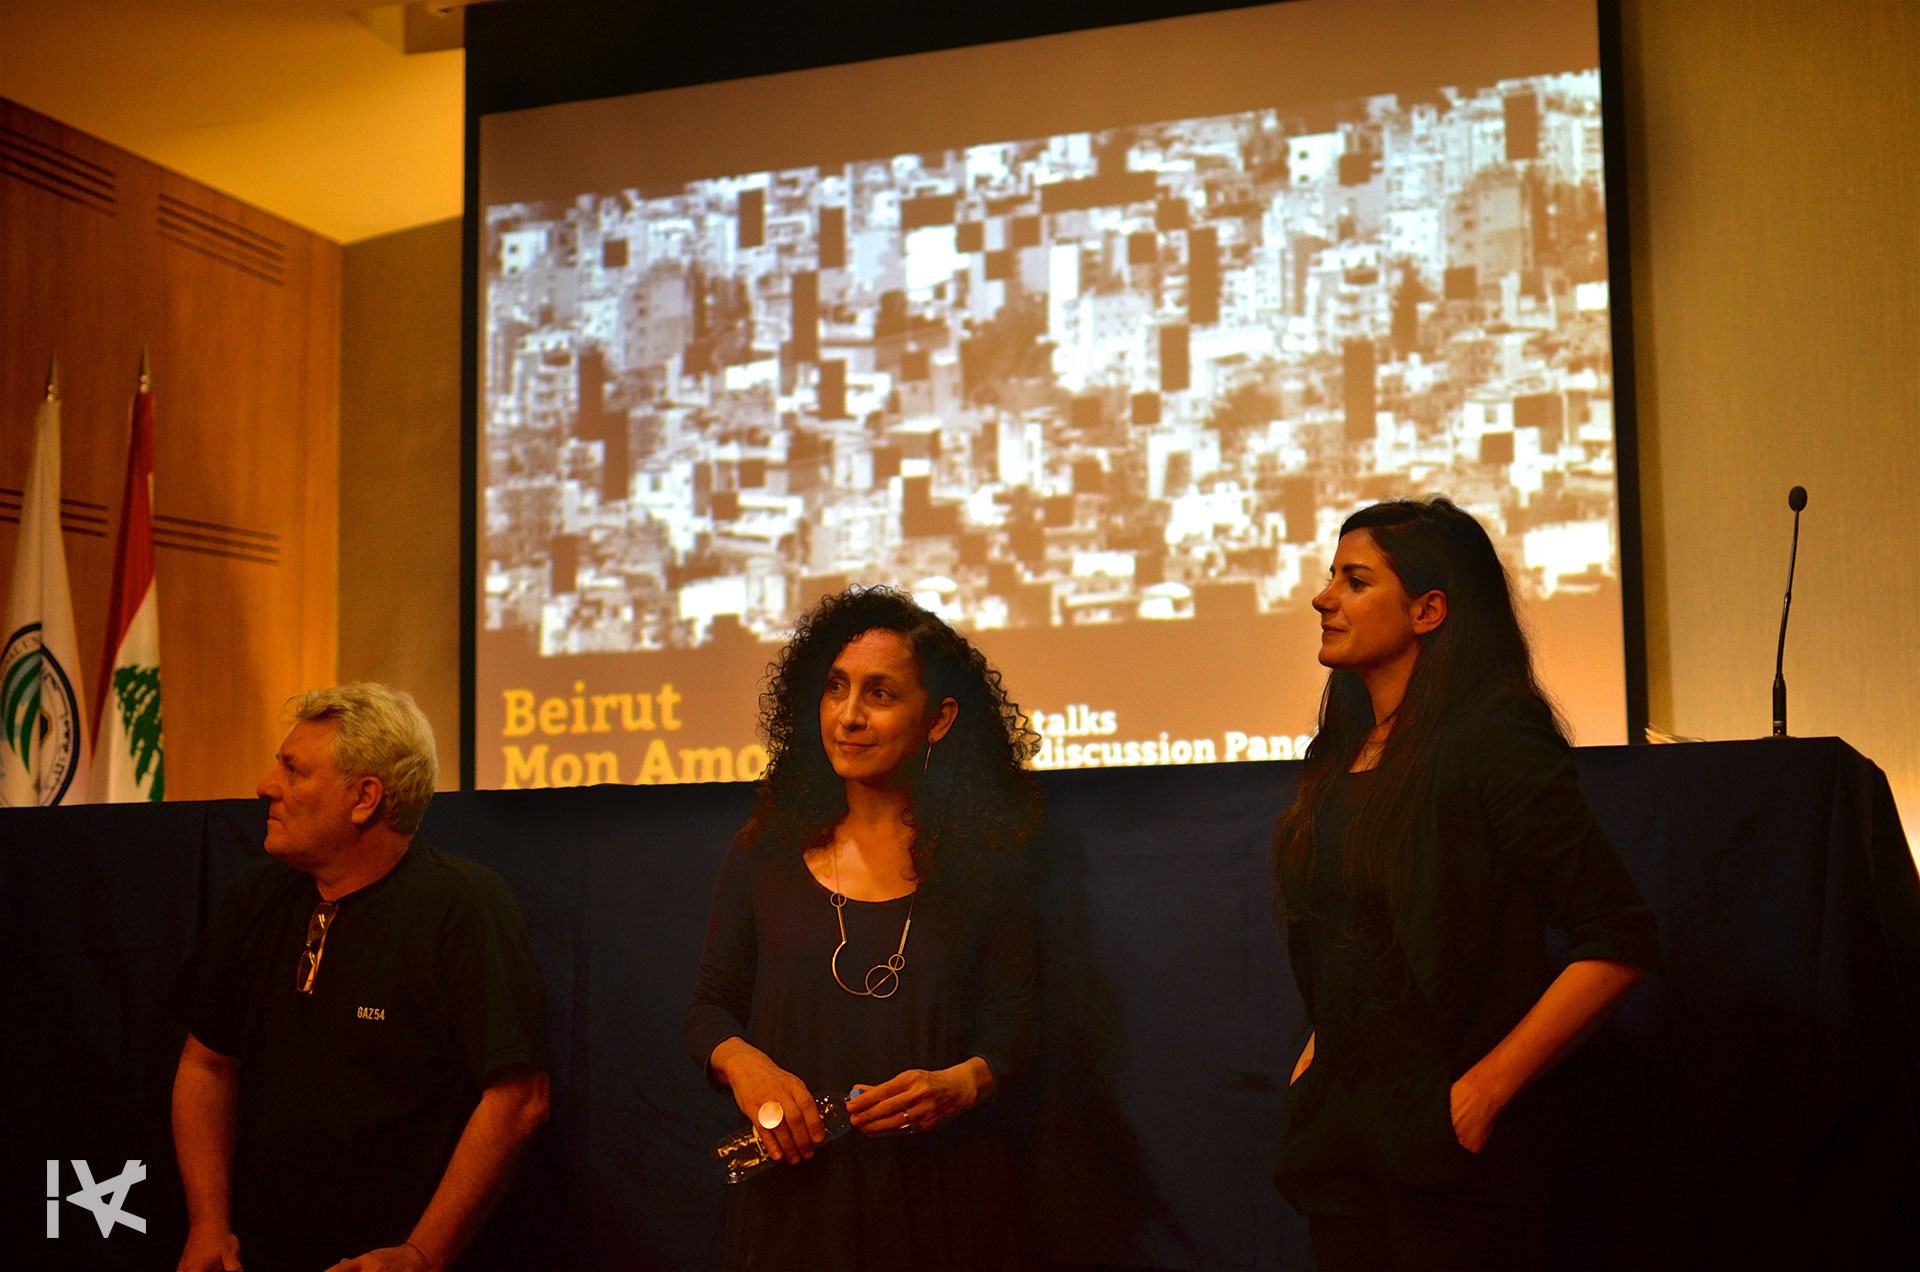 Beirut Mon Amour – Discussion / Audience Q&A